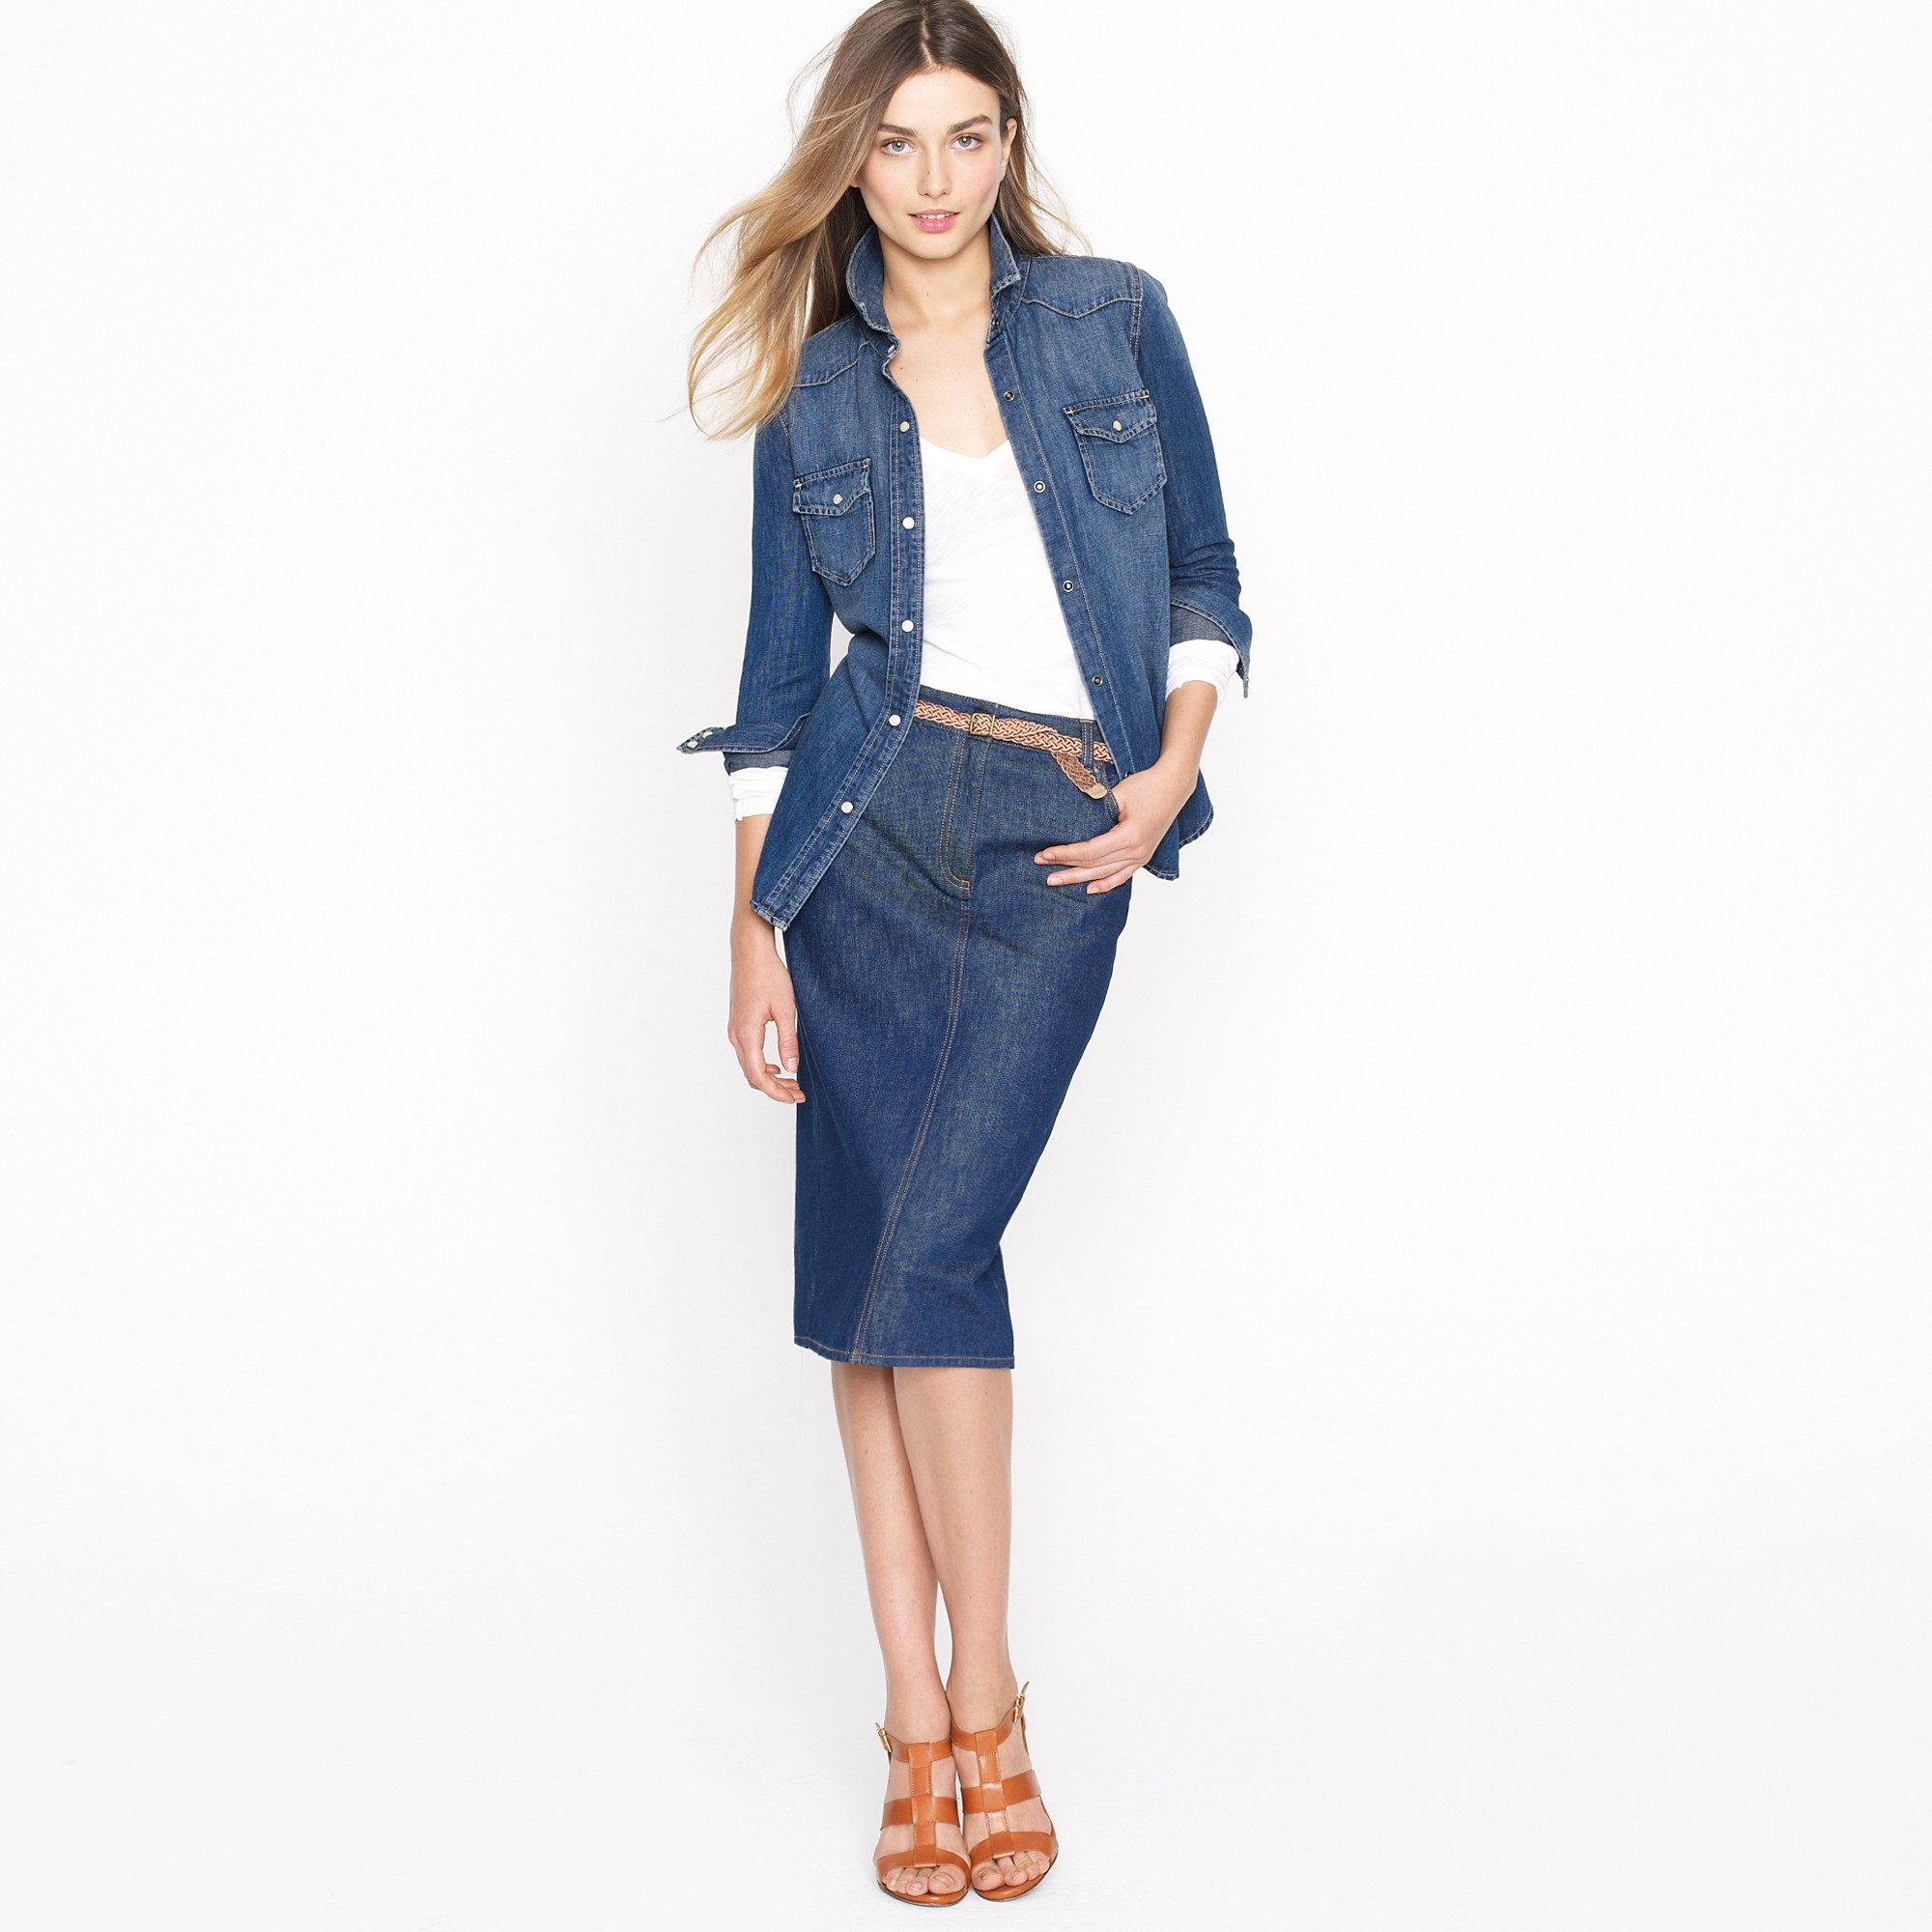 J.crew High-waisted Denim Pencil Skirt in Farmstand Wash in Blue ...